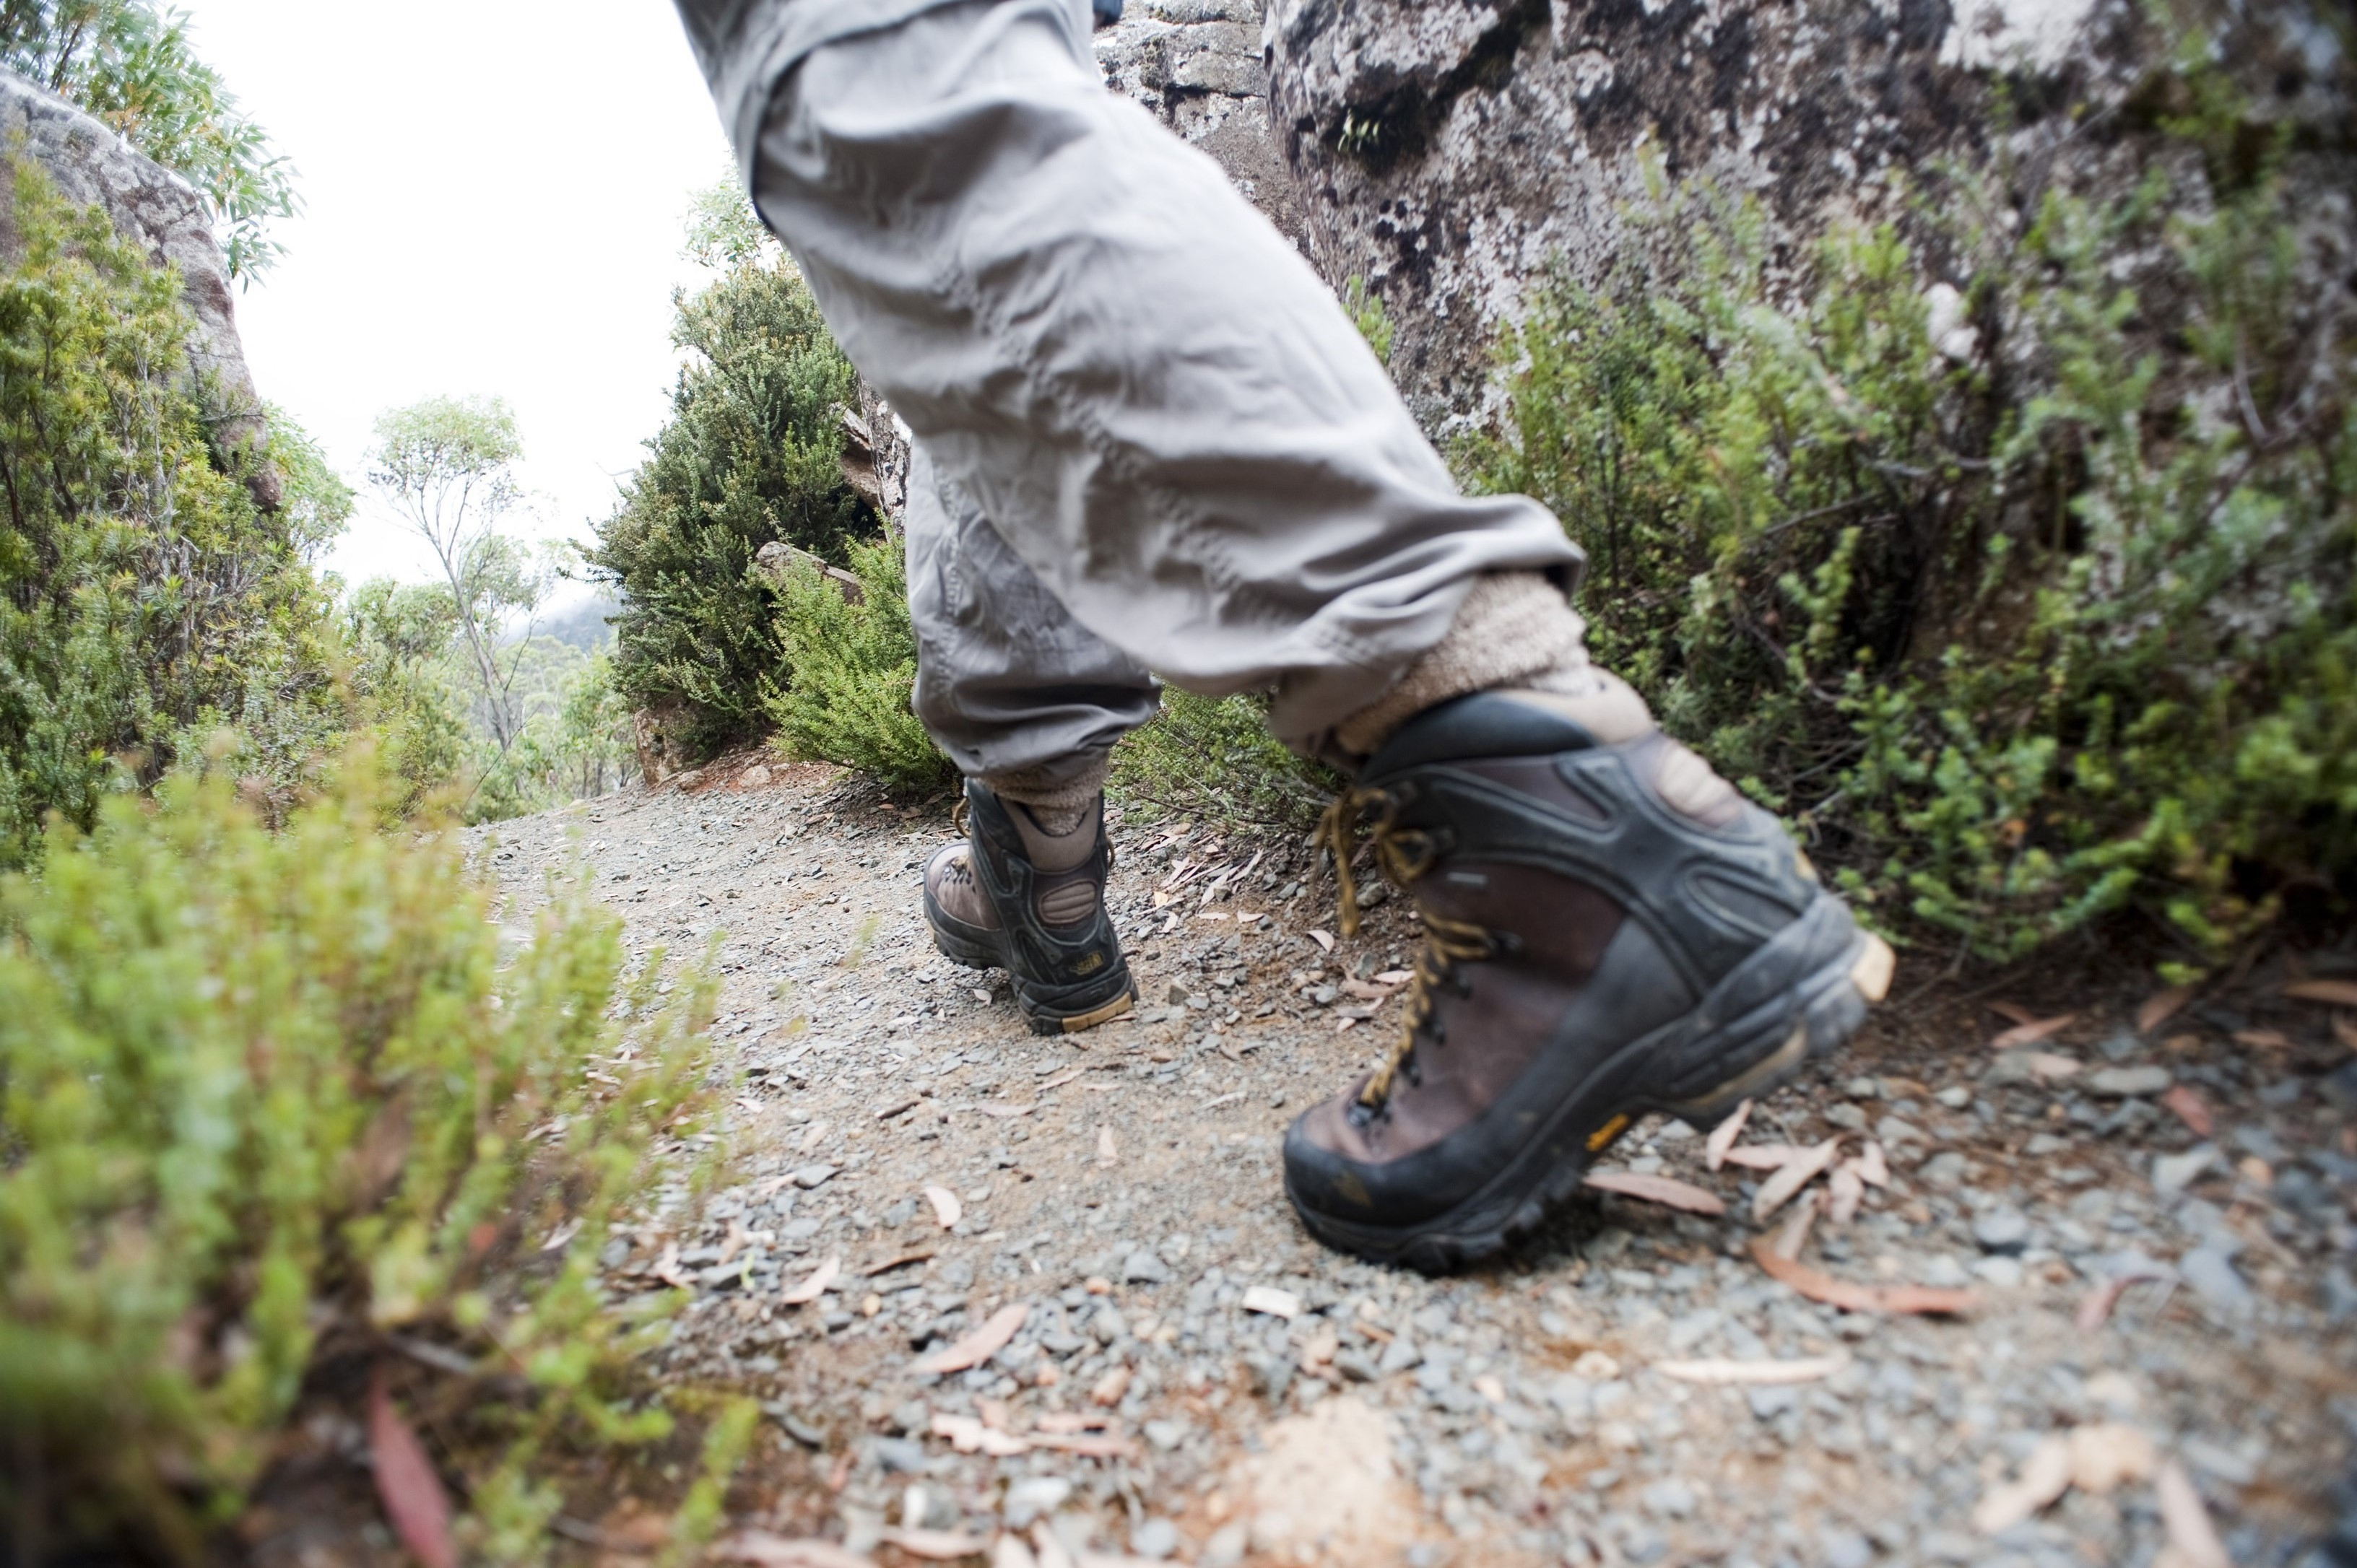 Low angle view of the hiking boots of a person hiking on a wilderness trail or footpath amongst shrubby vegetation